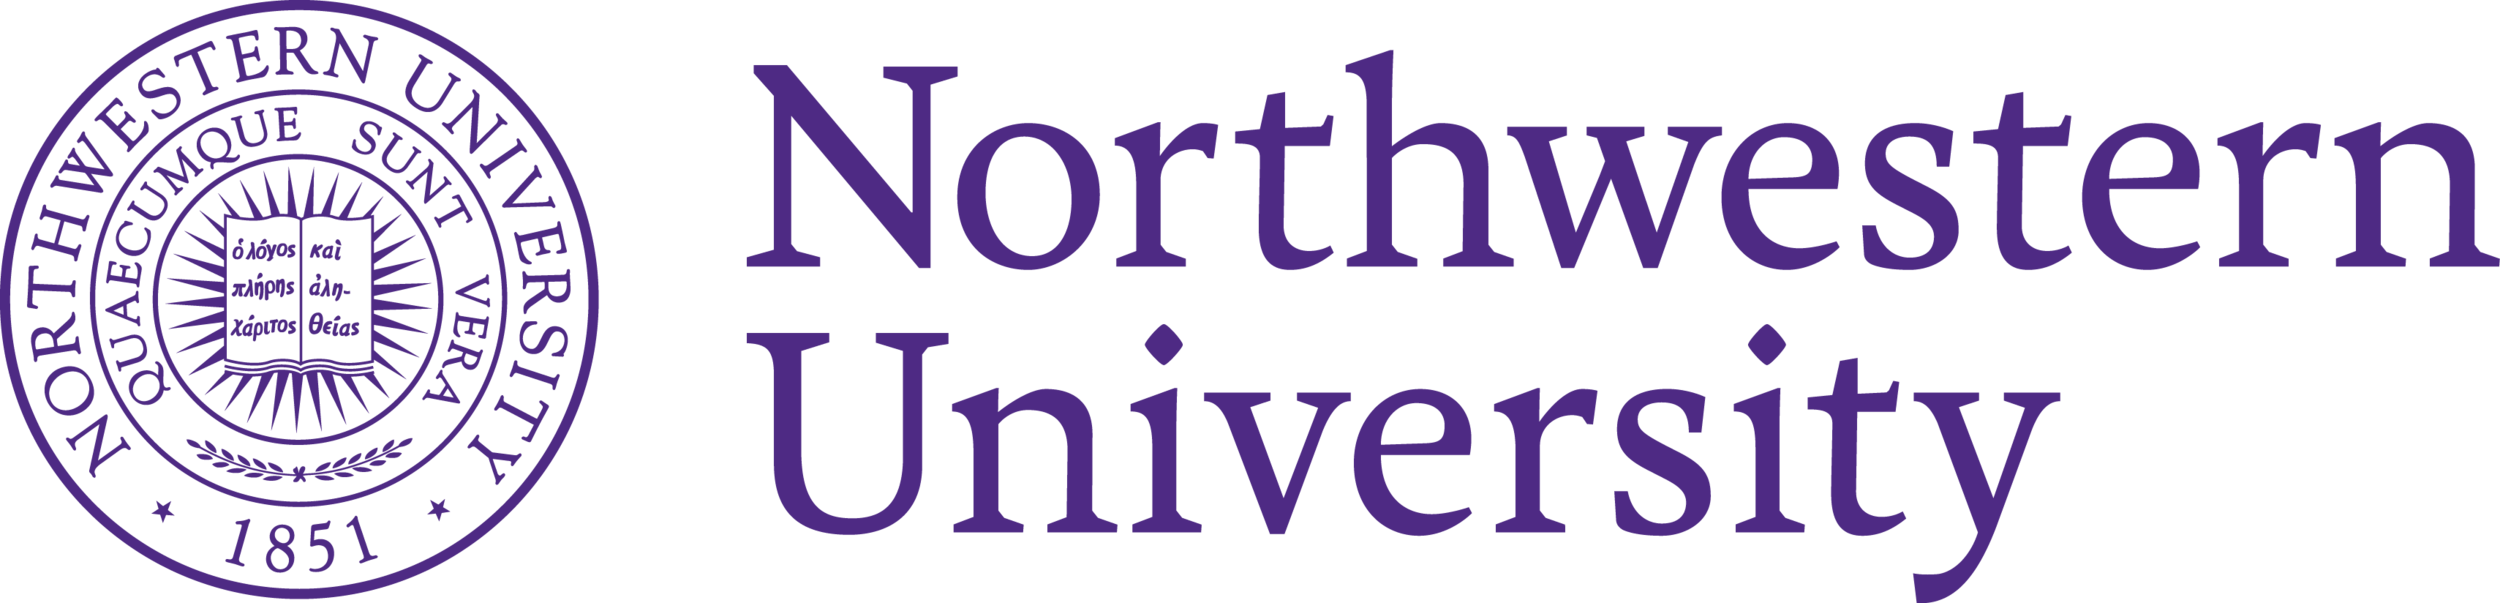 Northwestern_University_Lakhani_Coaching_Acceptance_List.png